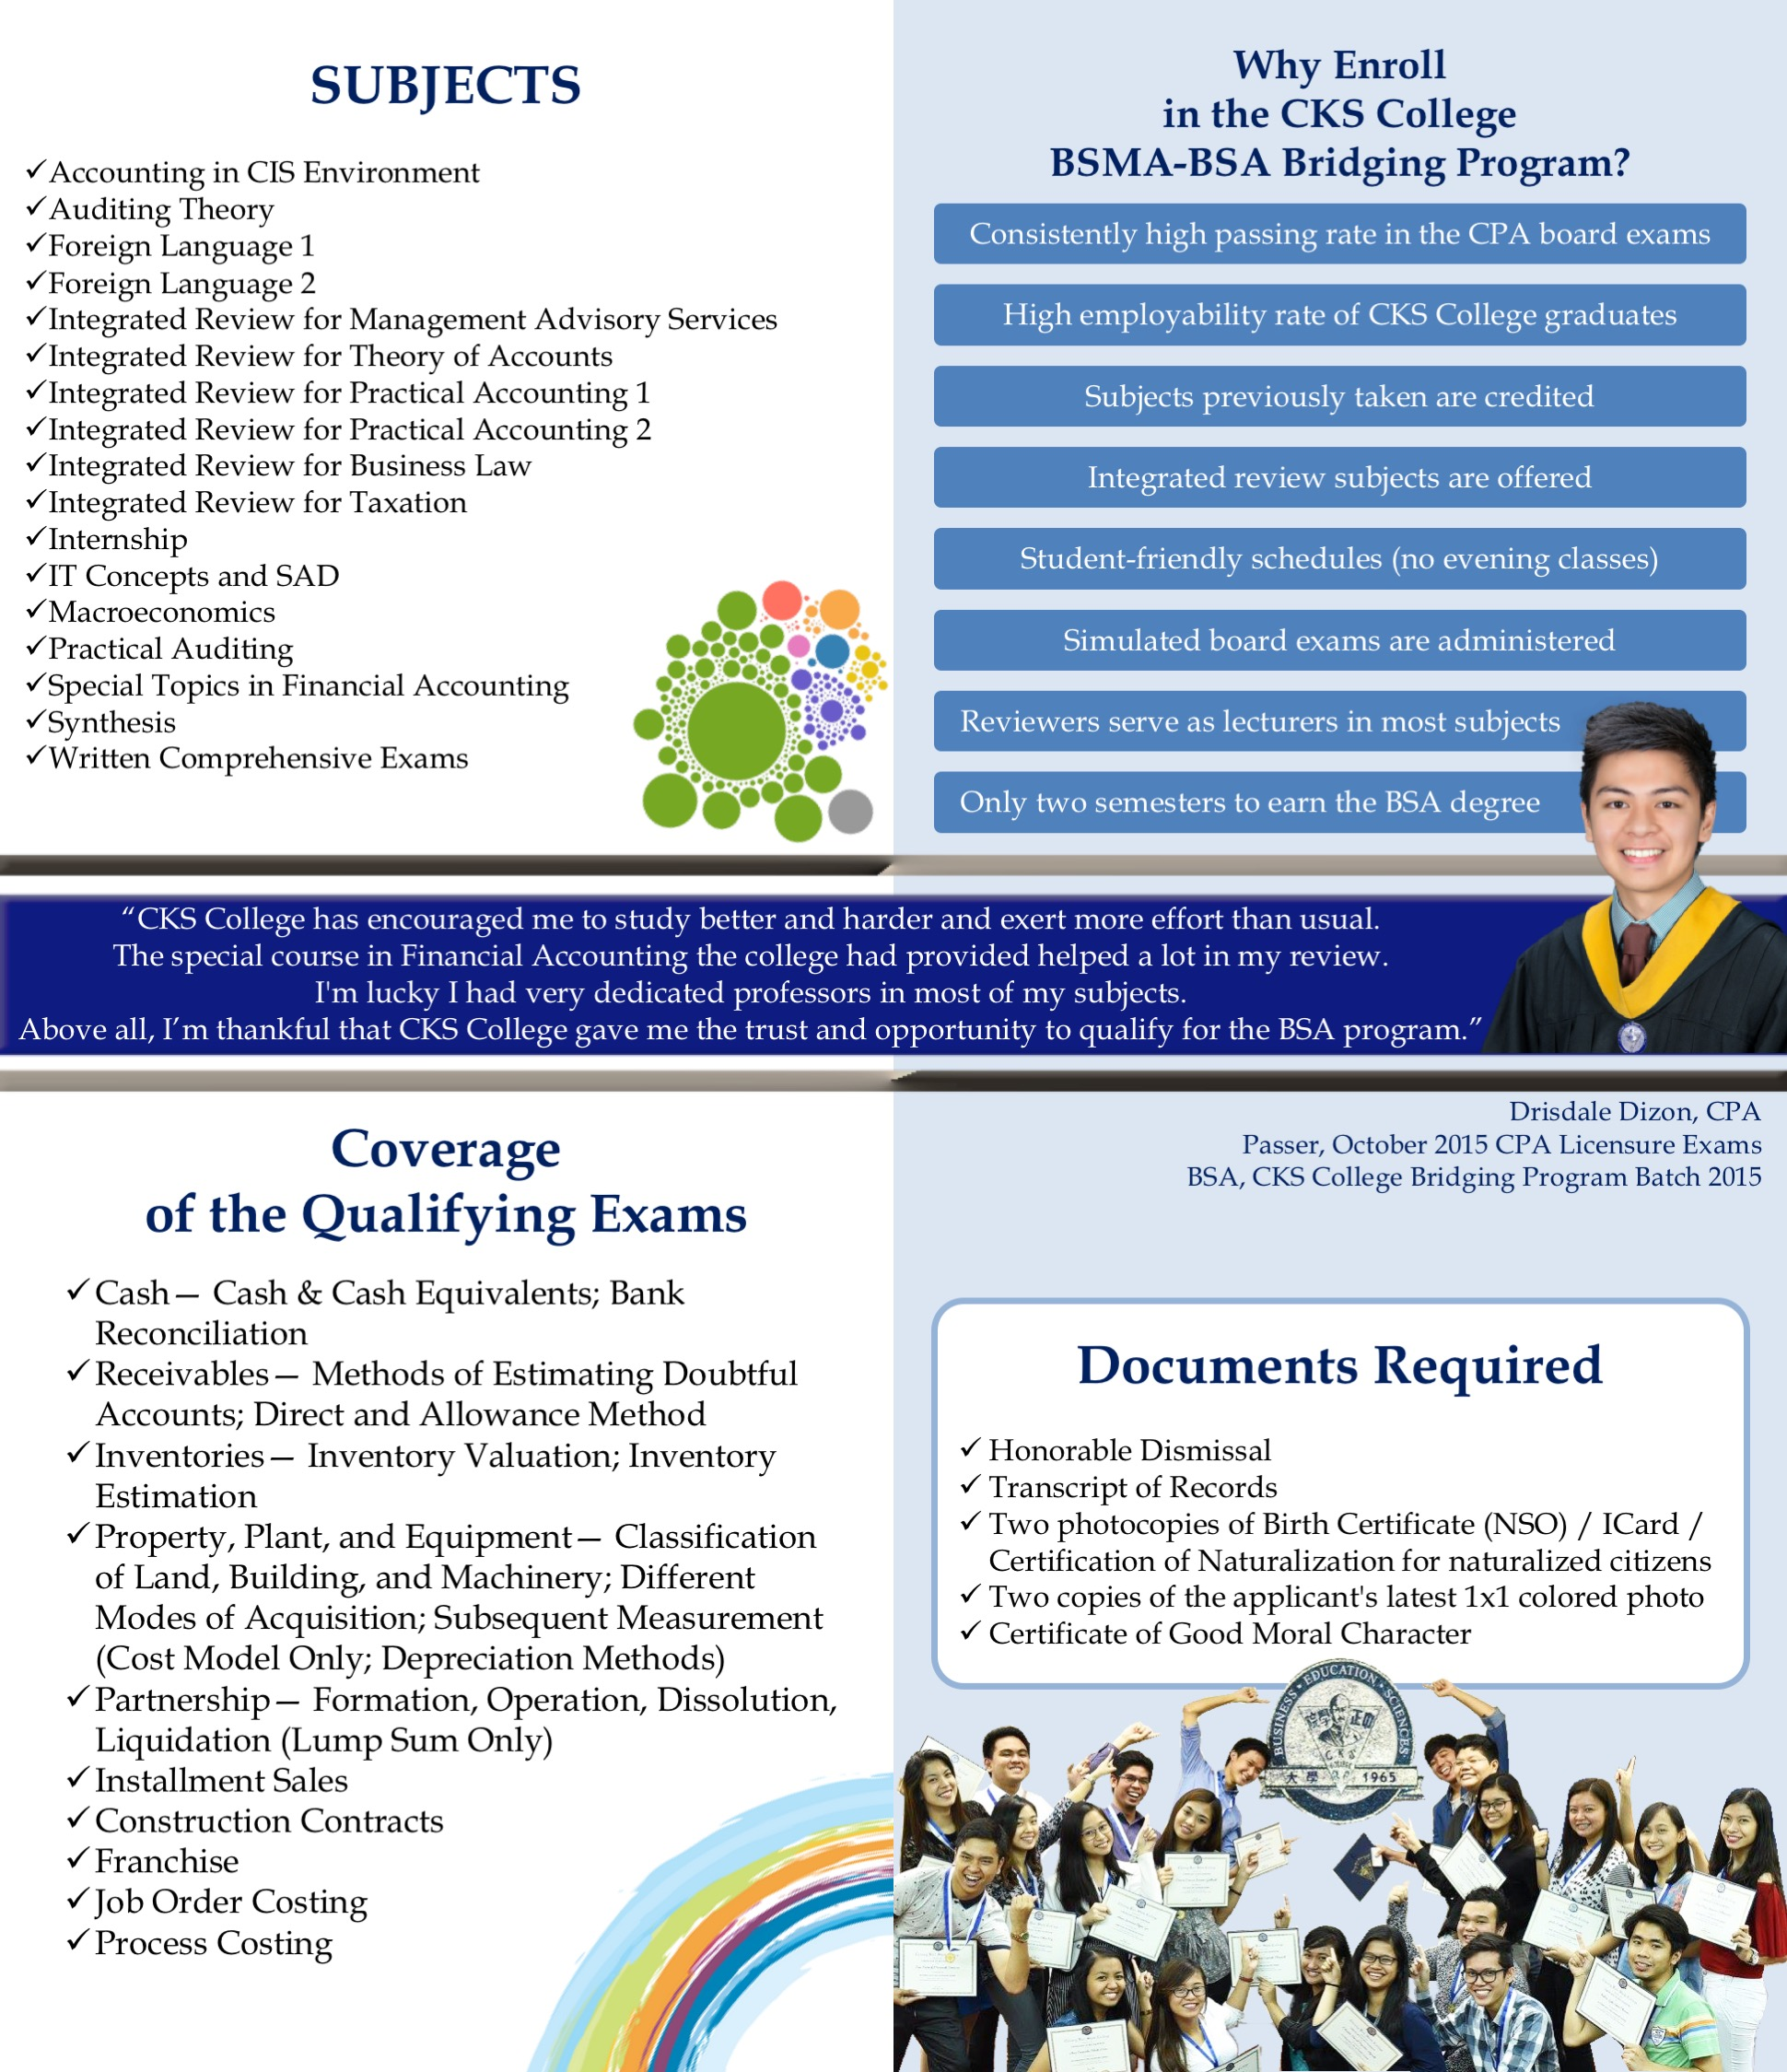 BSMA-BSA Bridging Program Flyer (2)